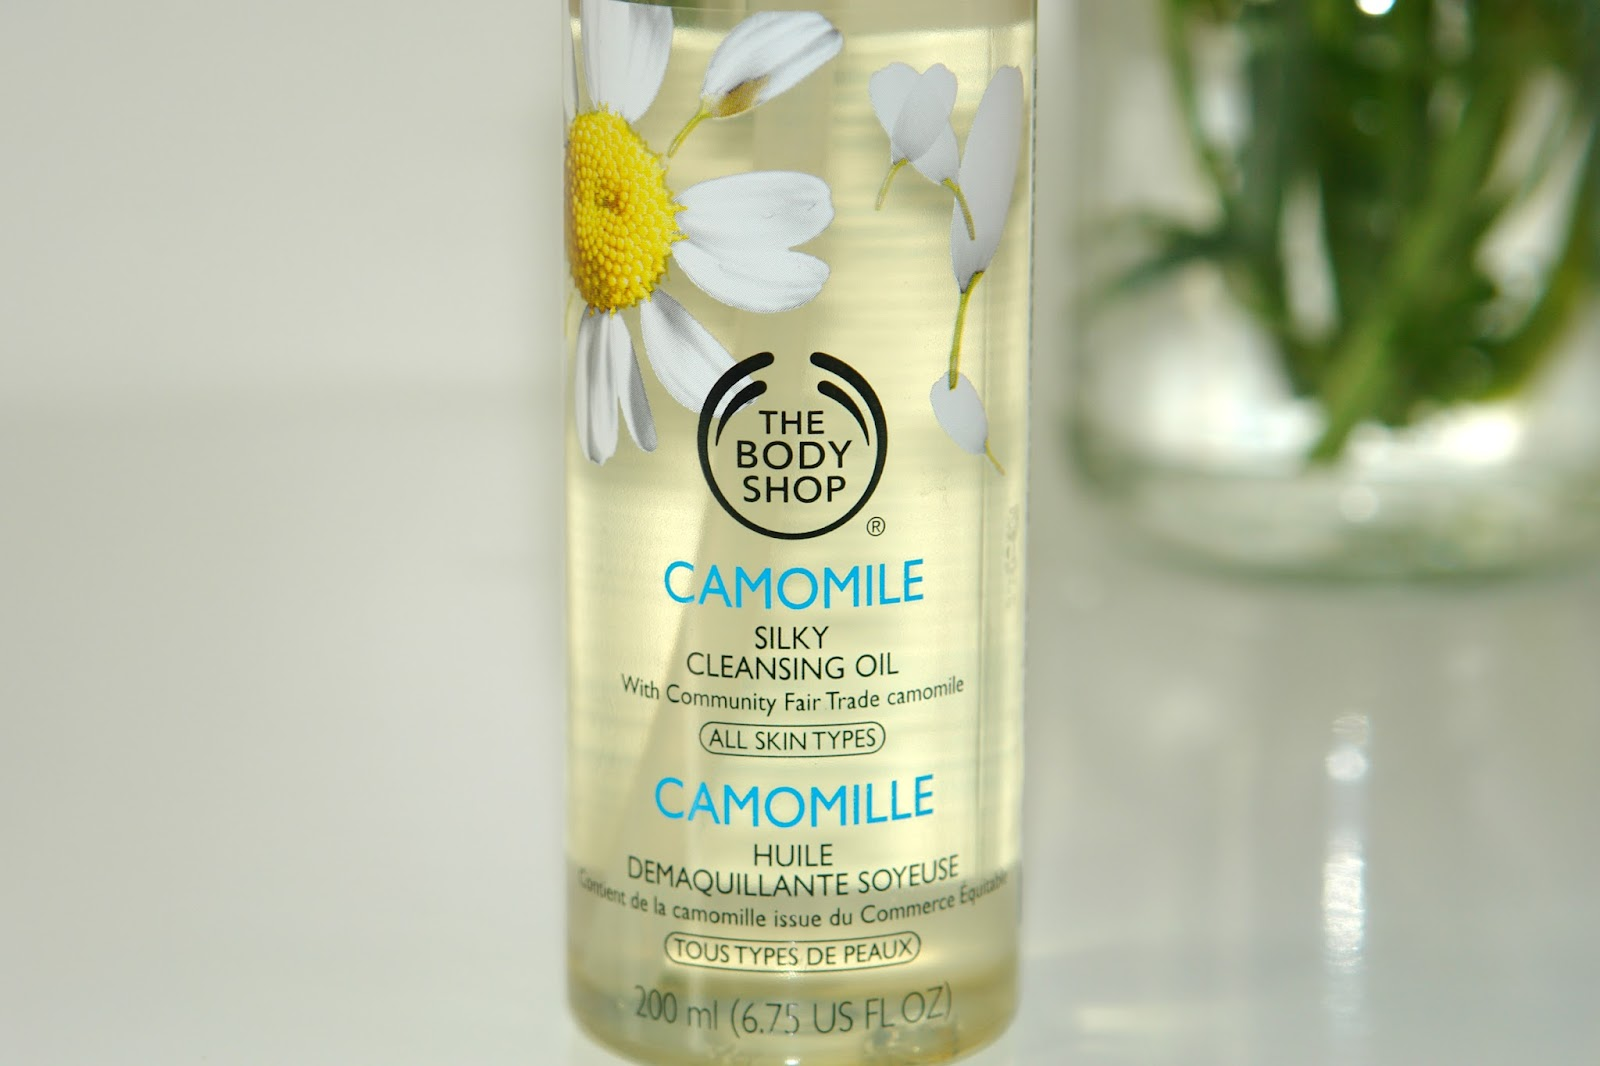 The Body Shop Camomile Silky Cleansing Oil review, beauty, review, skincare, The Body Shop, beauty blogger, top UK blogger, cleansing oil,